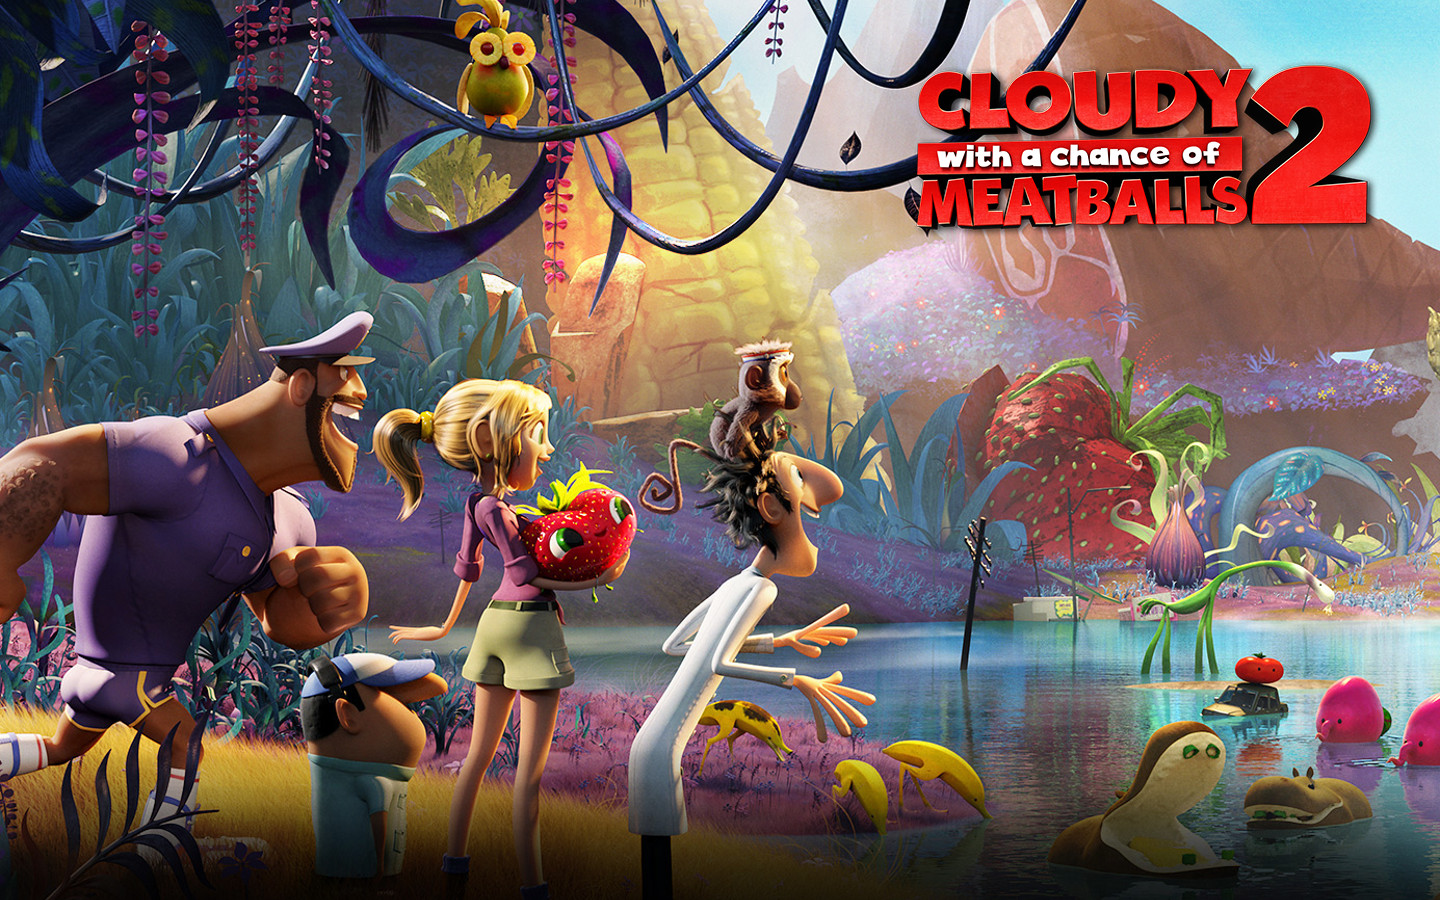 Cloudy with a chance of meatballs wallpaper image group (41+).